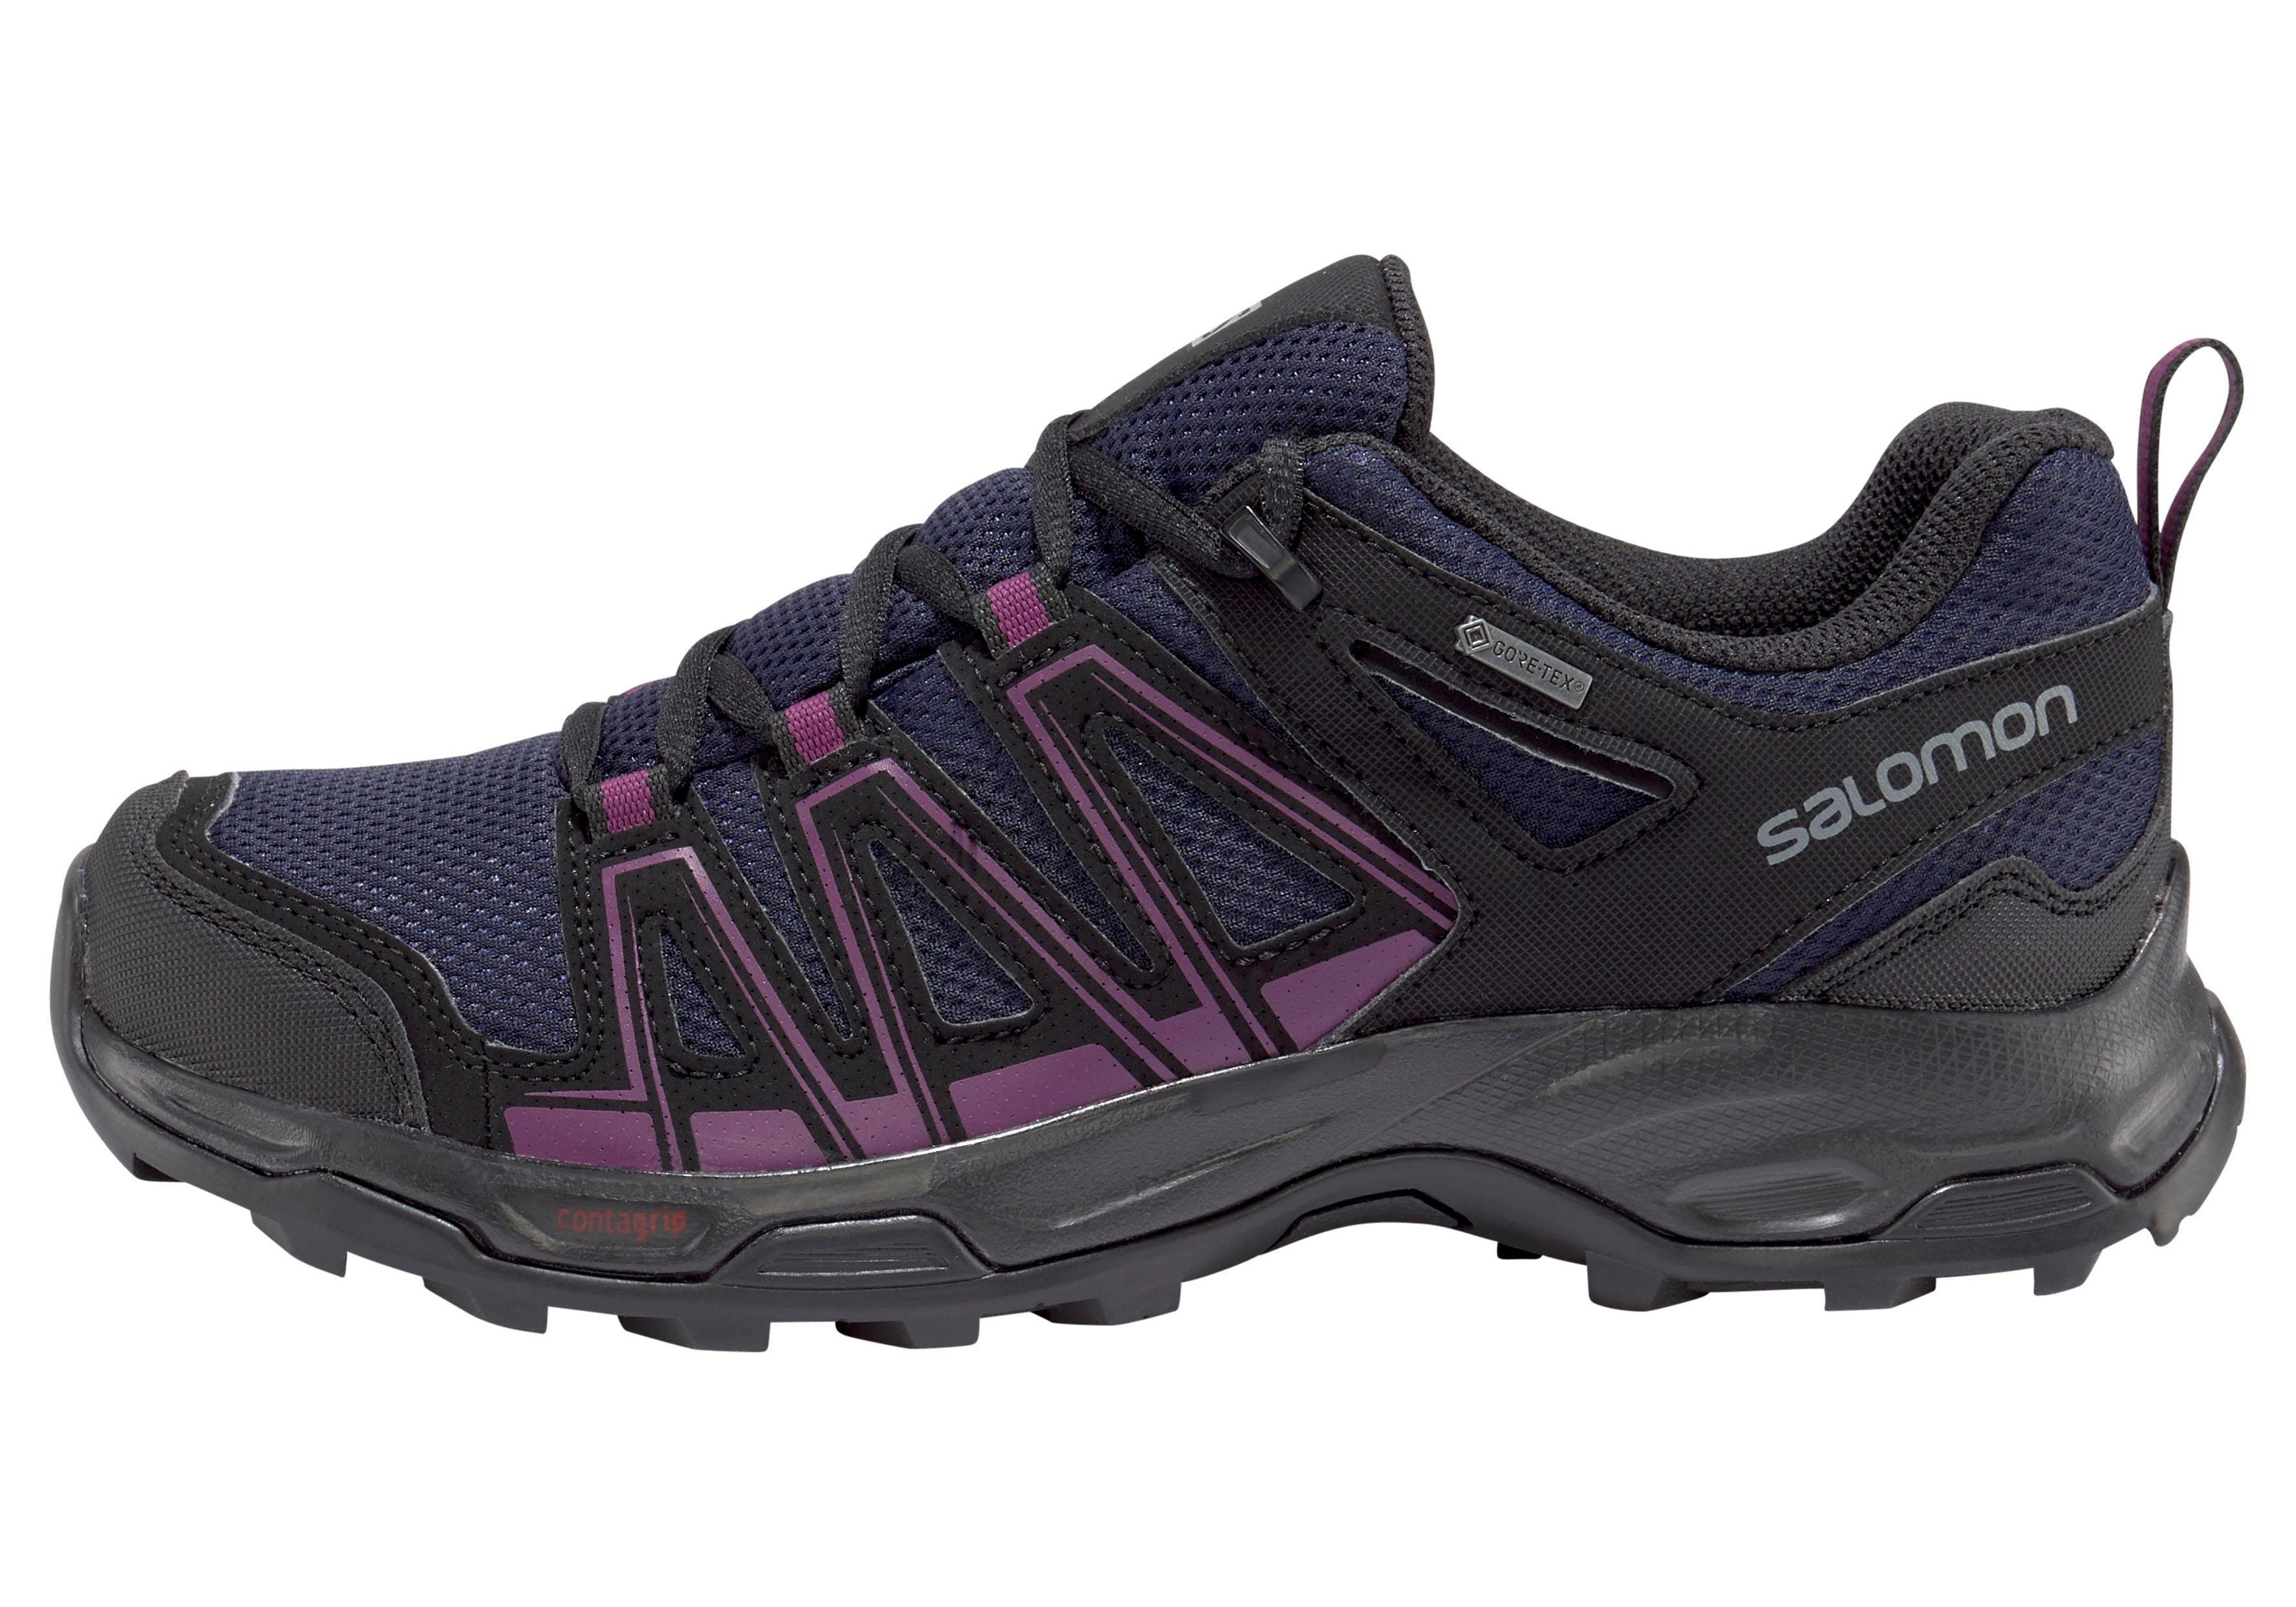 Salomon outdoorschoenen »EASTWOOD Gore-Tex® W«